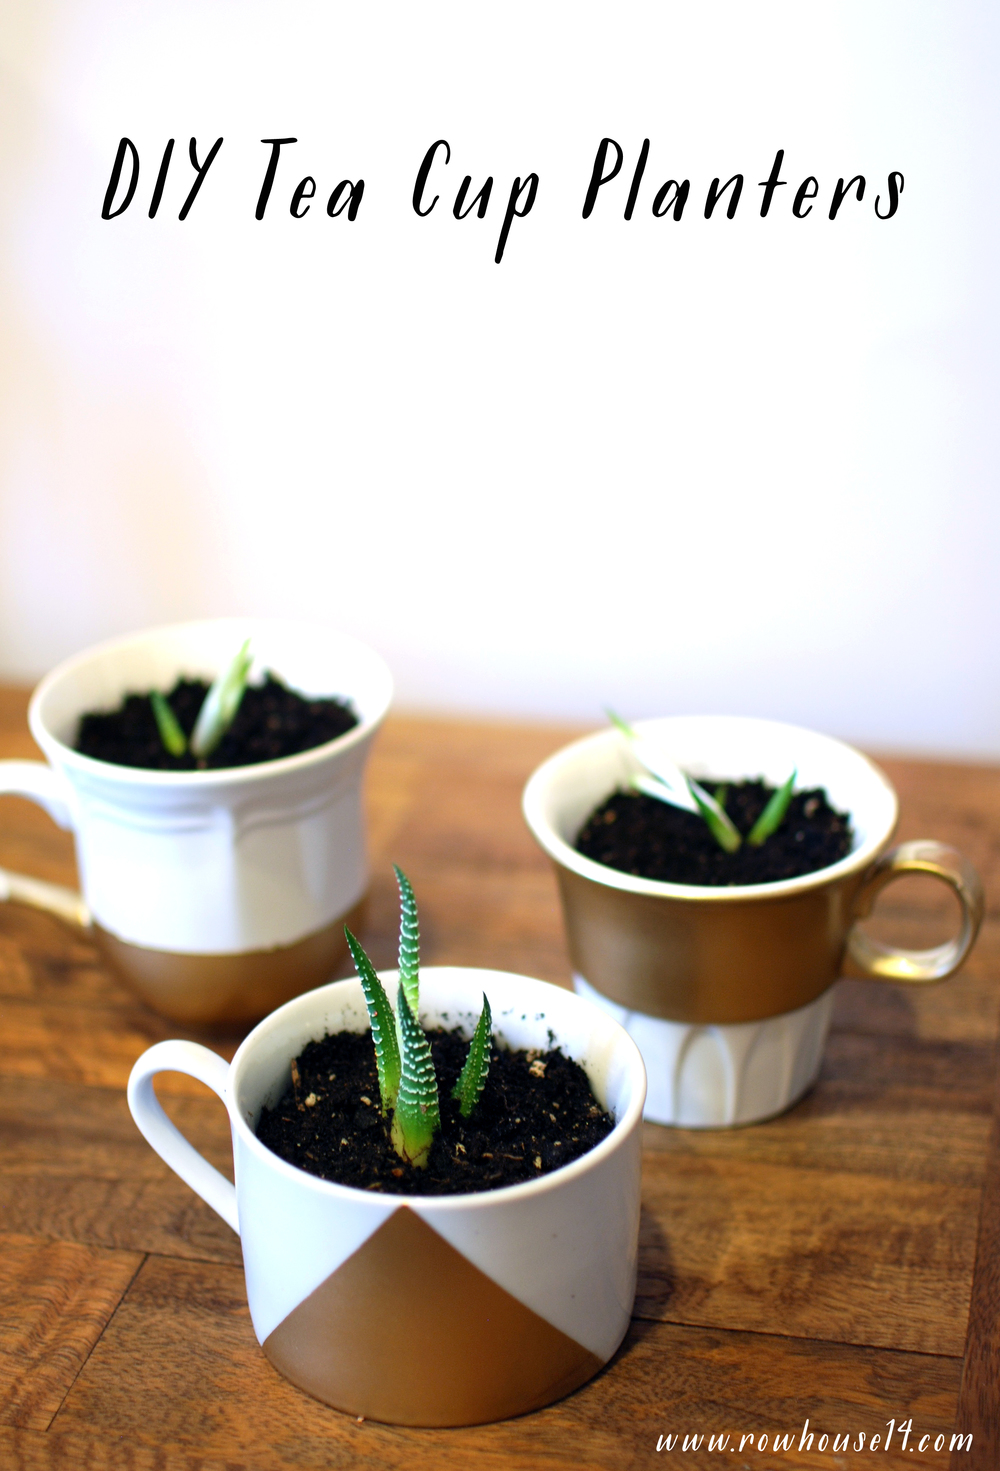 DIY Tea Cup Planter